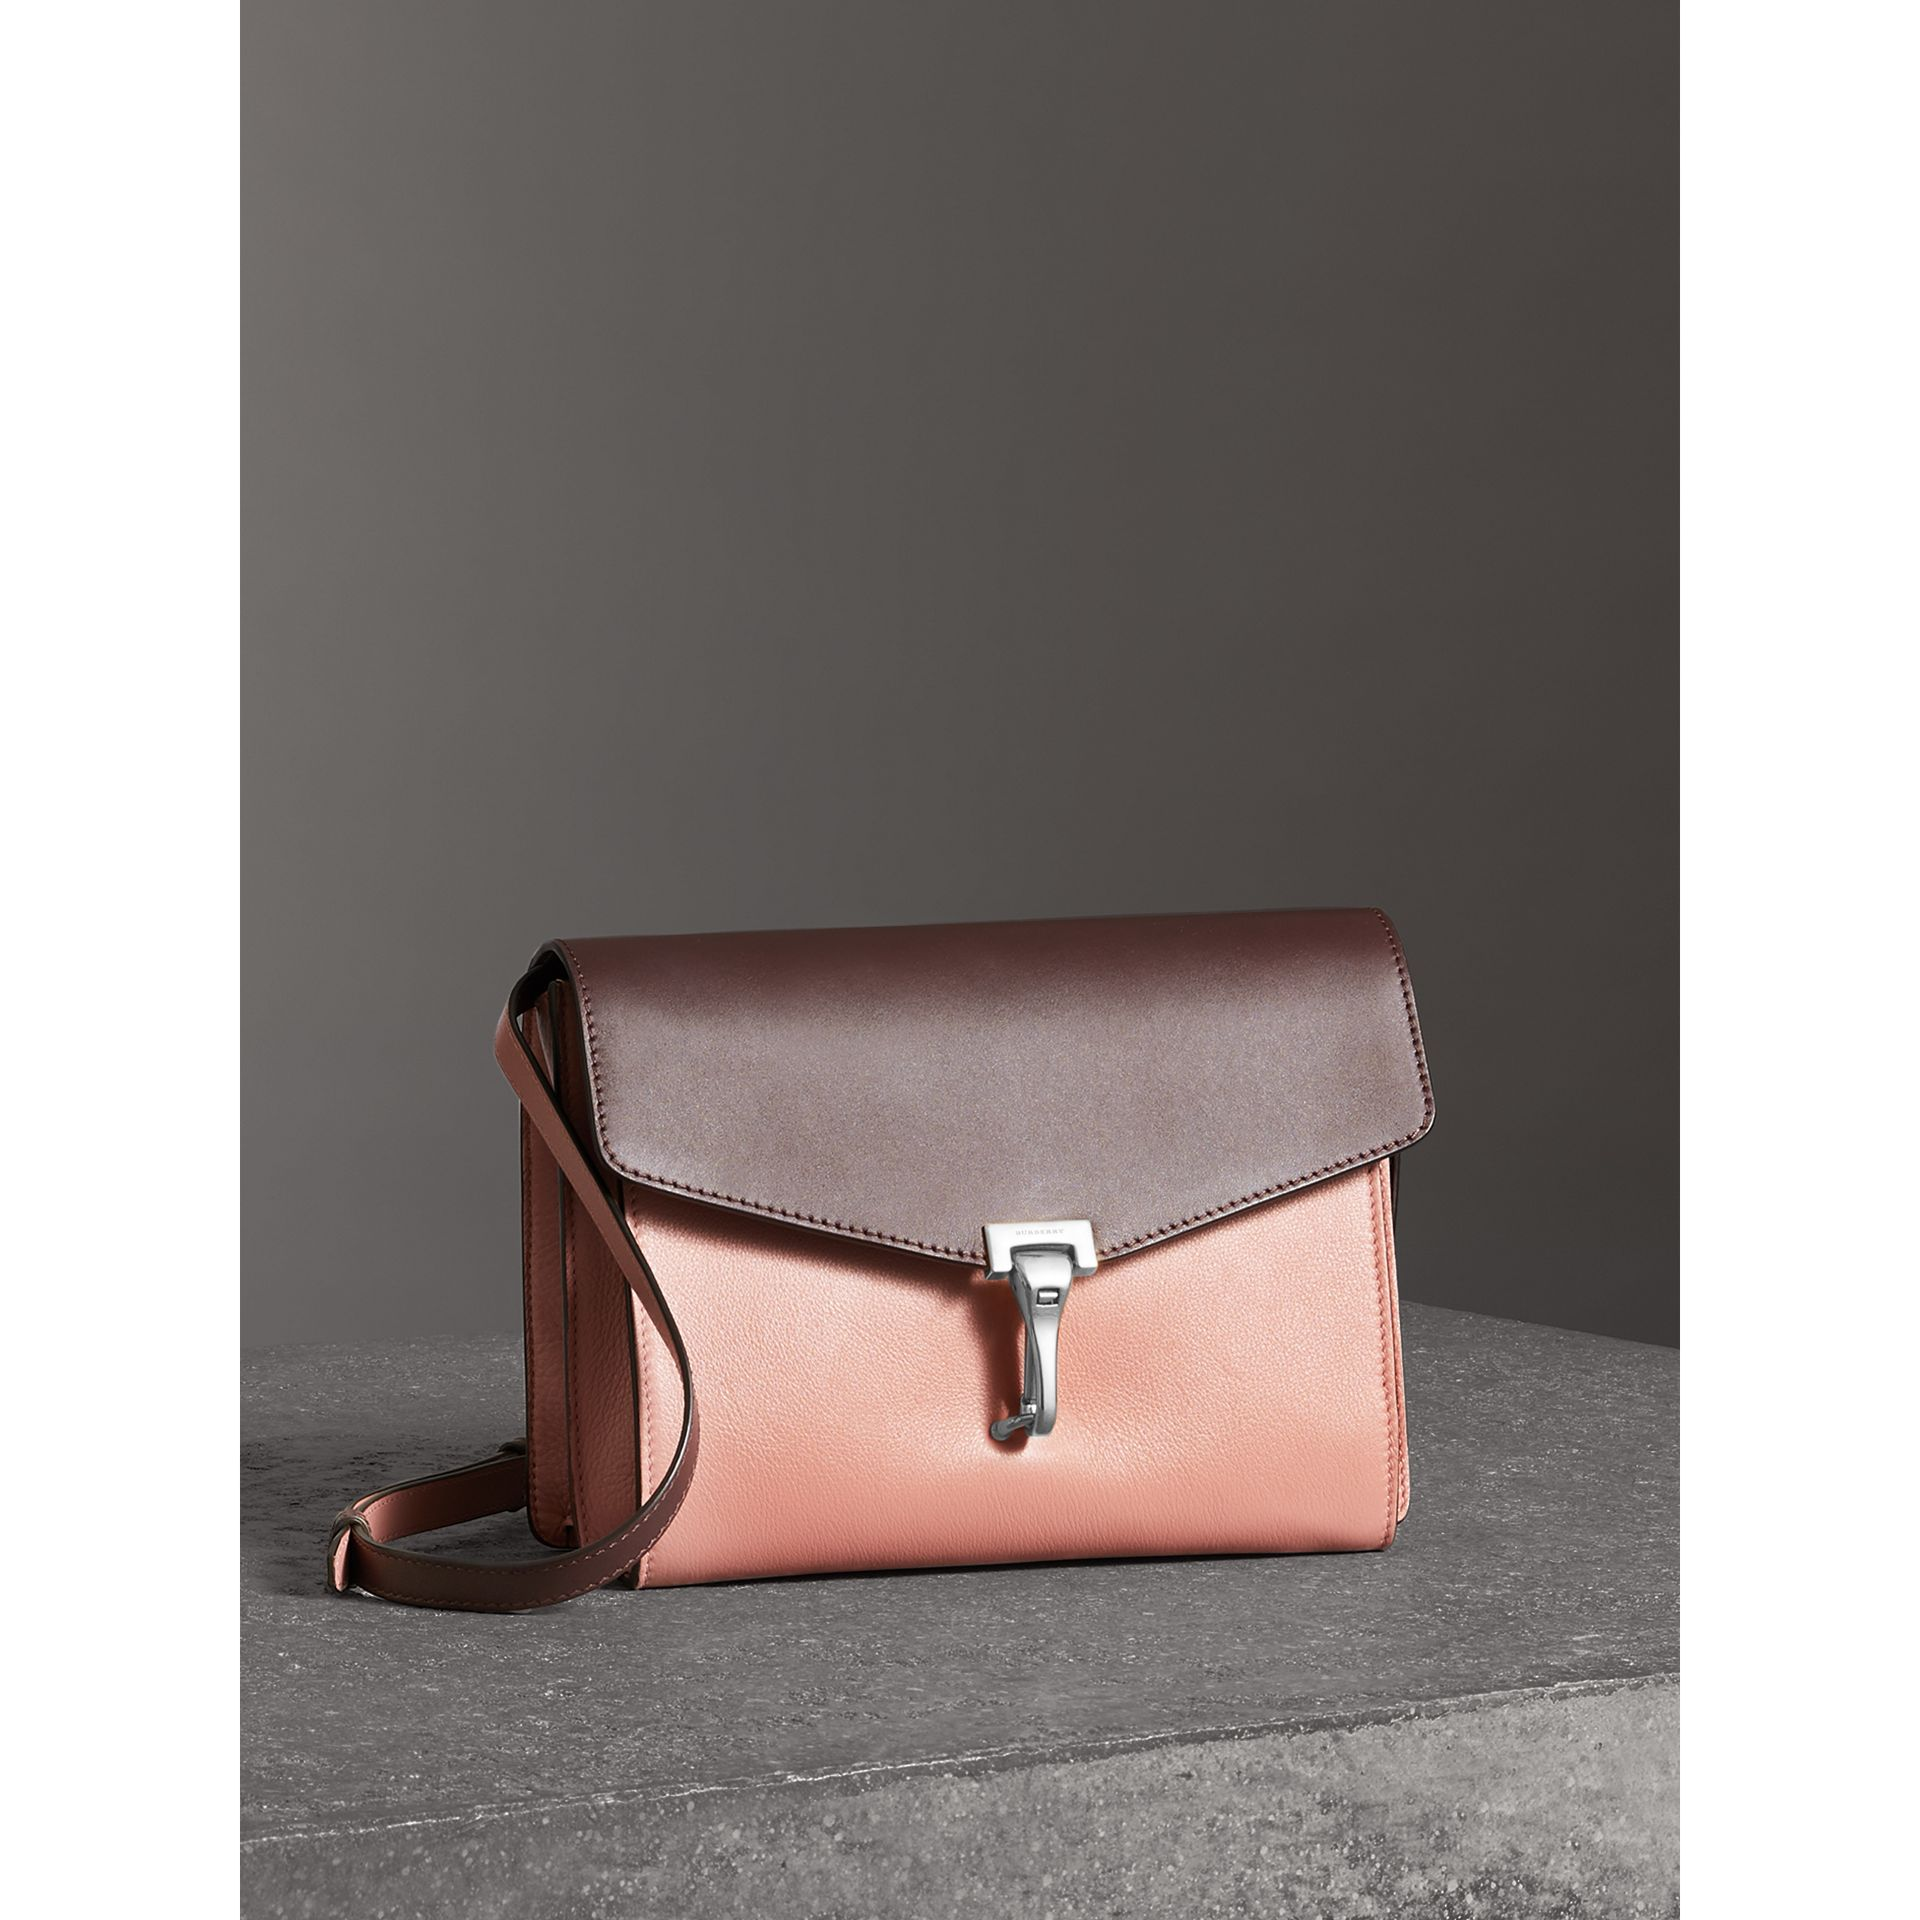 Two-tone Leather Crossbody Bag in Dusty Rose/deep Claret - Women | Burberry - gallery image 6